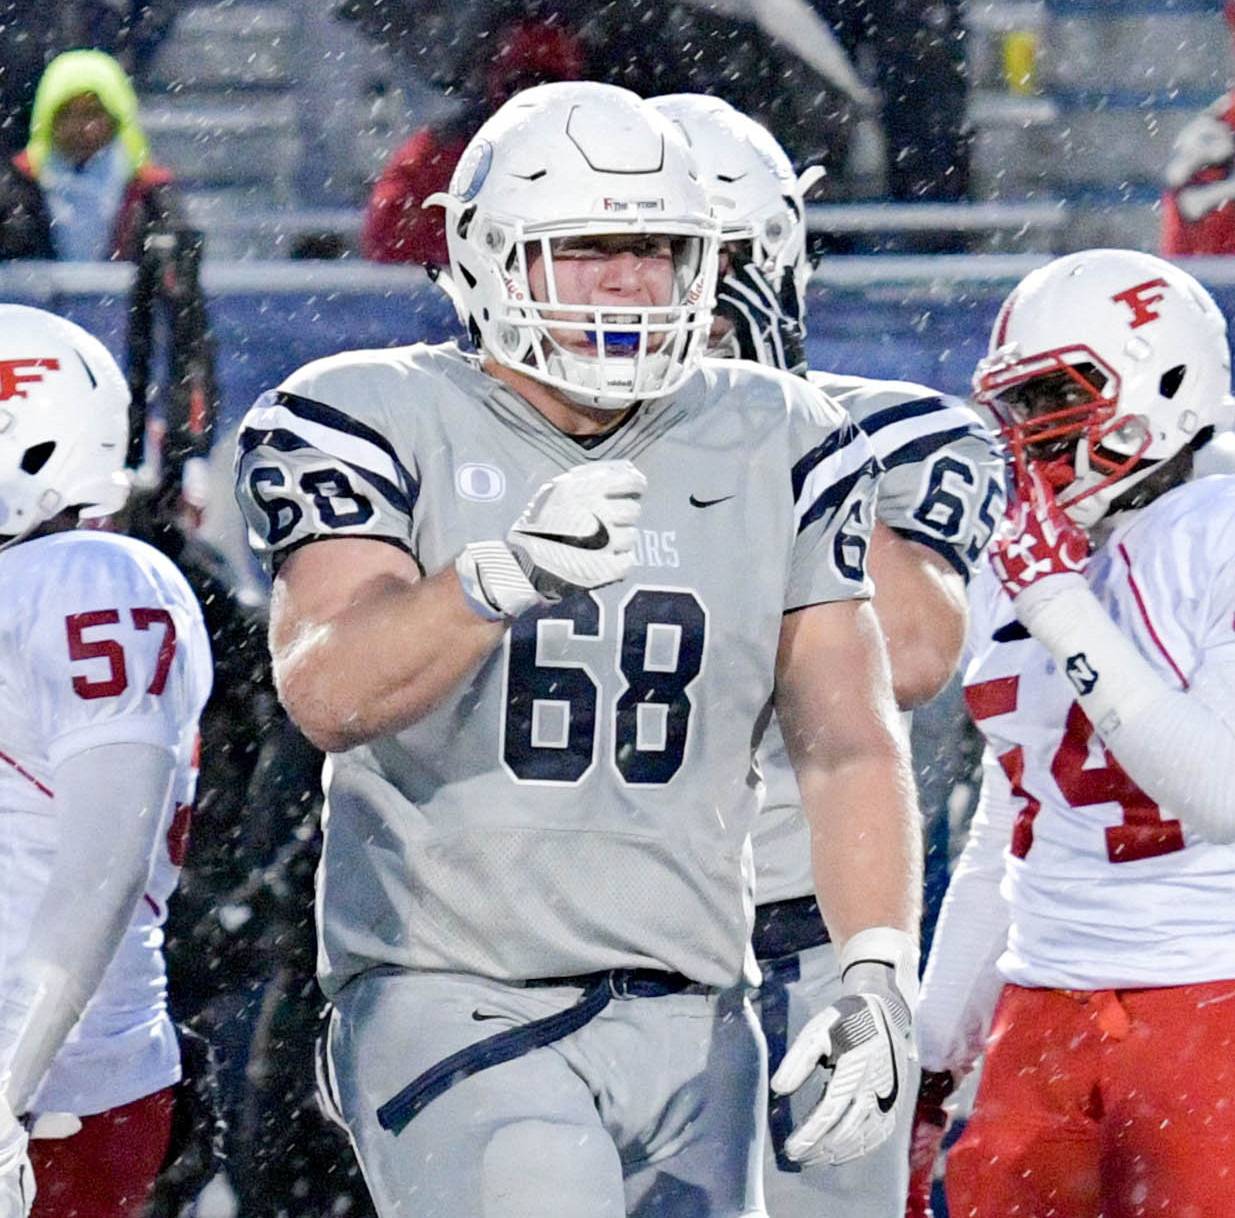 Senior Mike Scibelli, who had seven tackles and two sacks, was part of a lights-out defensive effort for the Sailors.